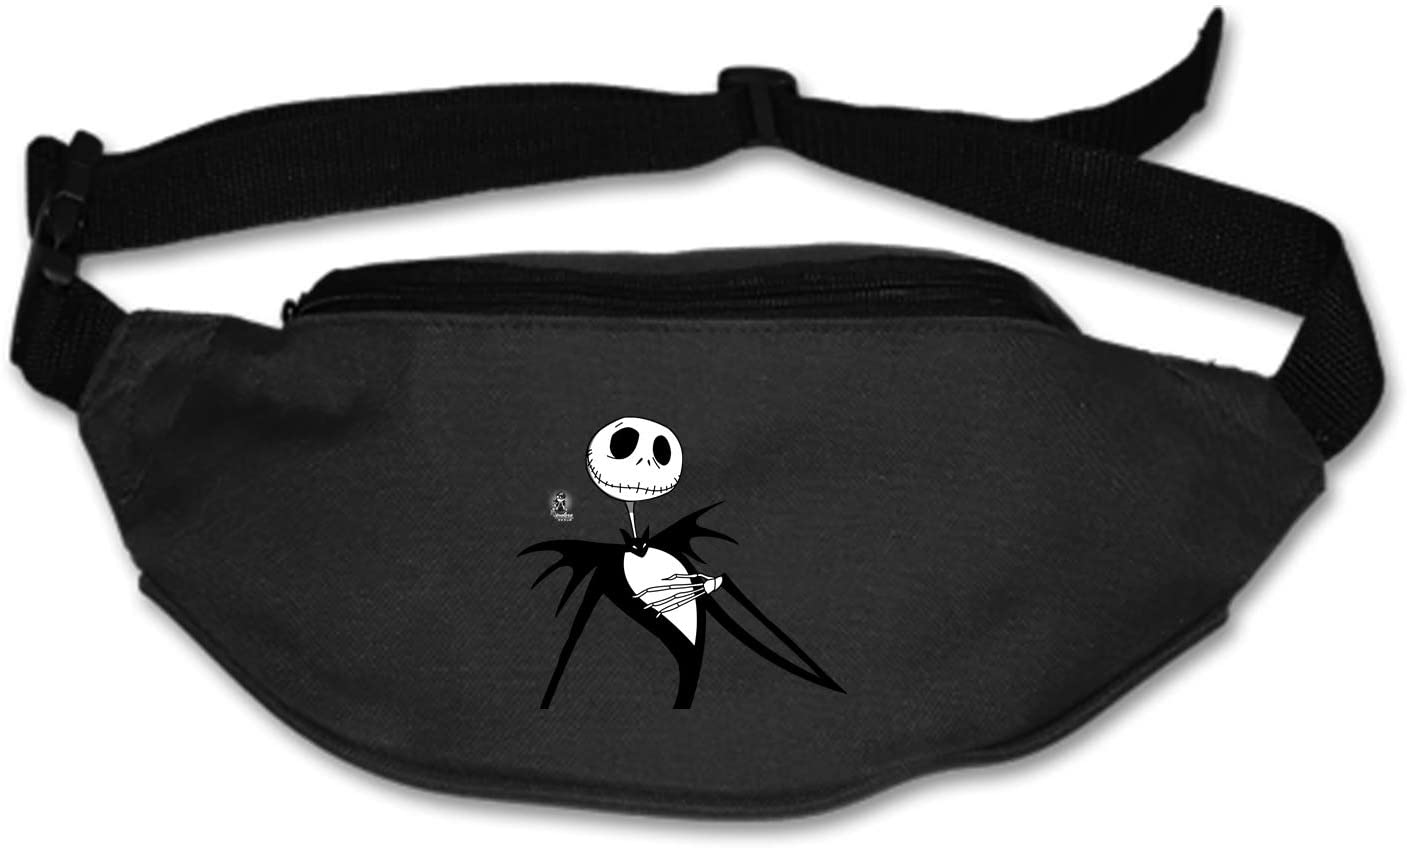 AyxjlSv Nightmare Before Christmas King Waist Bag Fanny Pack/Hip Pack Bum Bag for Man Women Sports Travel Running Hiking/Money iPhone 6/7 6S/7S Plus Samsung S5/S6